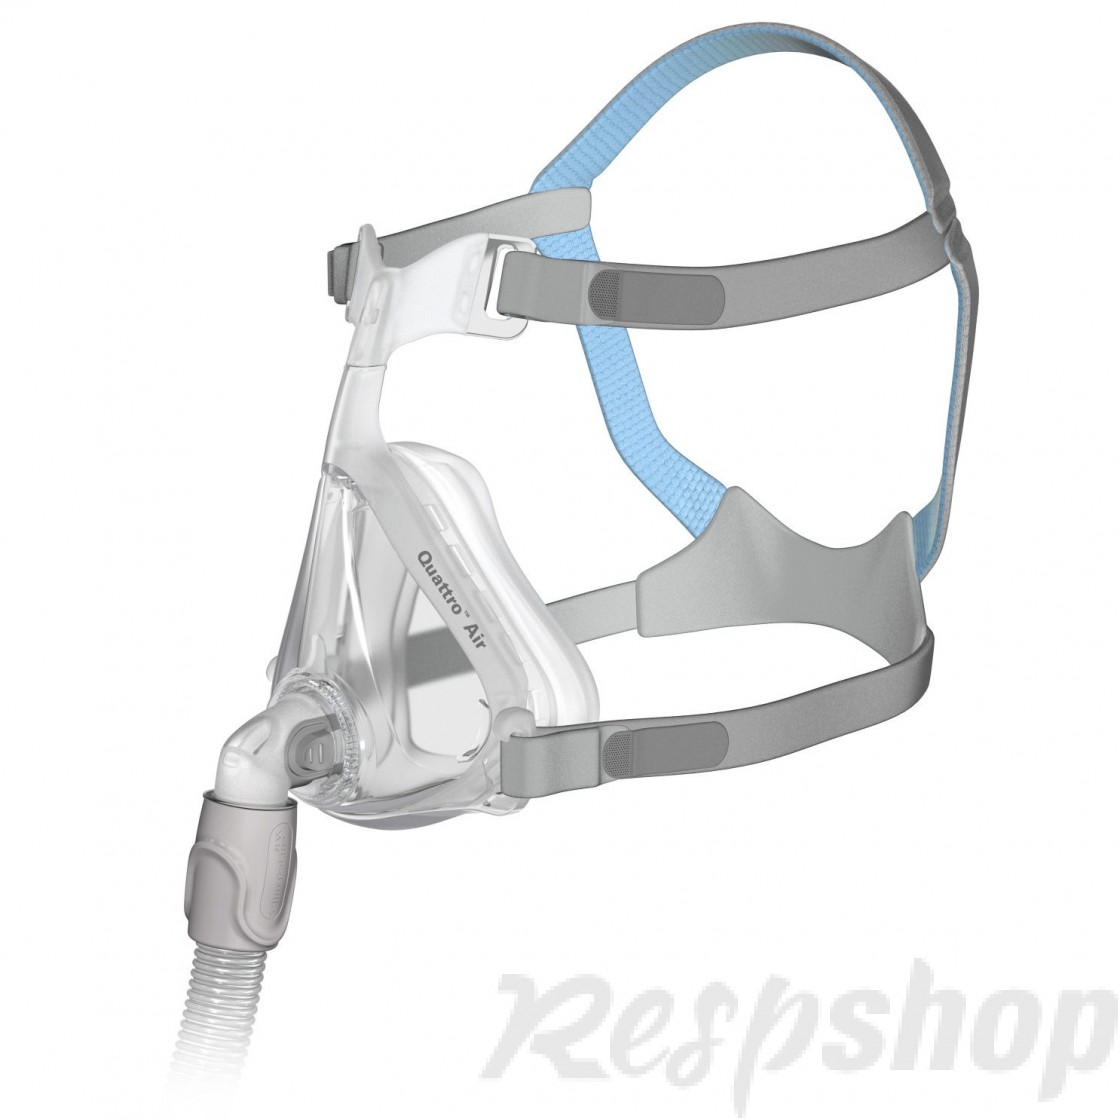 Quattro Air CPAP Full Face Mask with Headgear